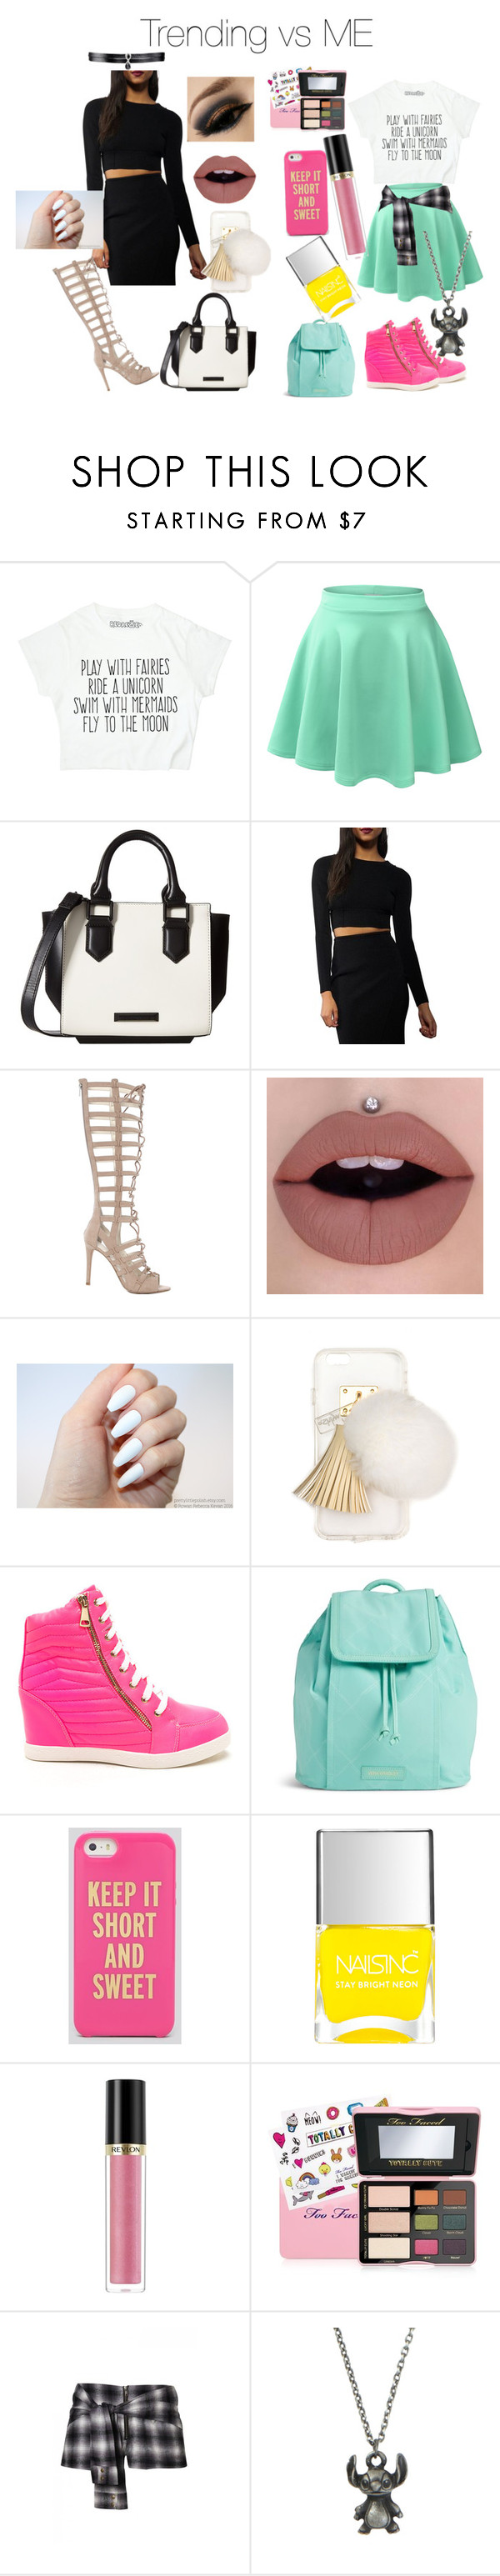 """""""Trending vs Me"""" by micaj on Polyvore featuring LE3NO, Kendall + Kylie, Ashlyn'd, Vera Bradley, Kate Spade, Nails Inc., Revlon, Too Faced Cosmetics, Disney and Fallon"""